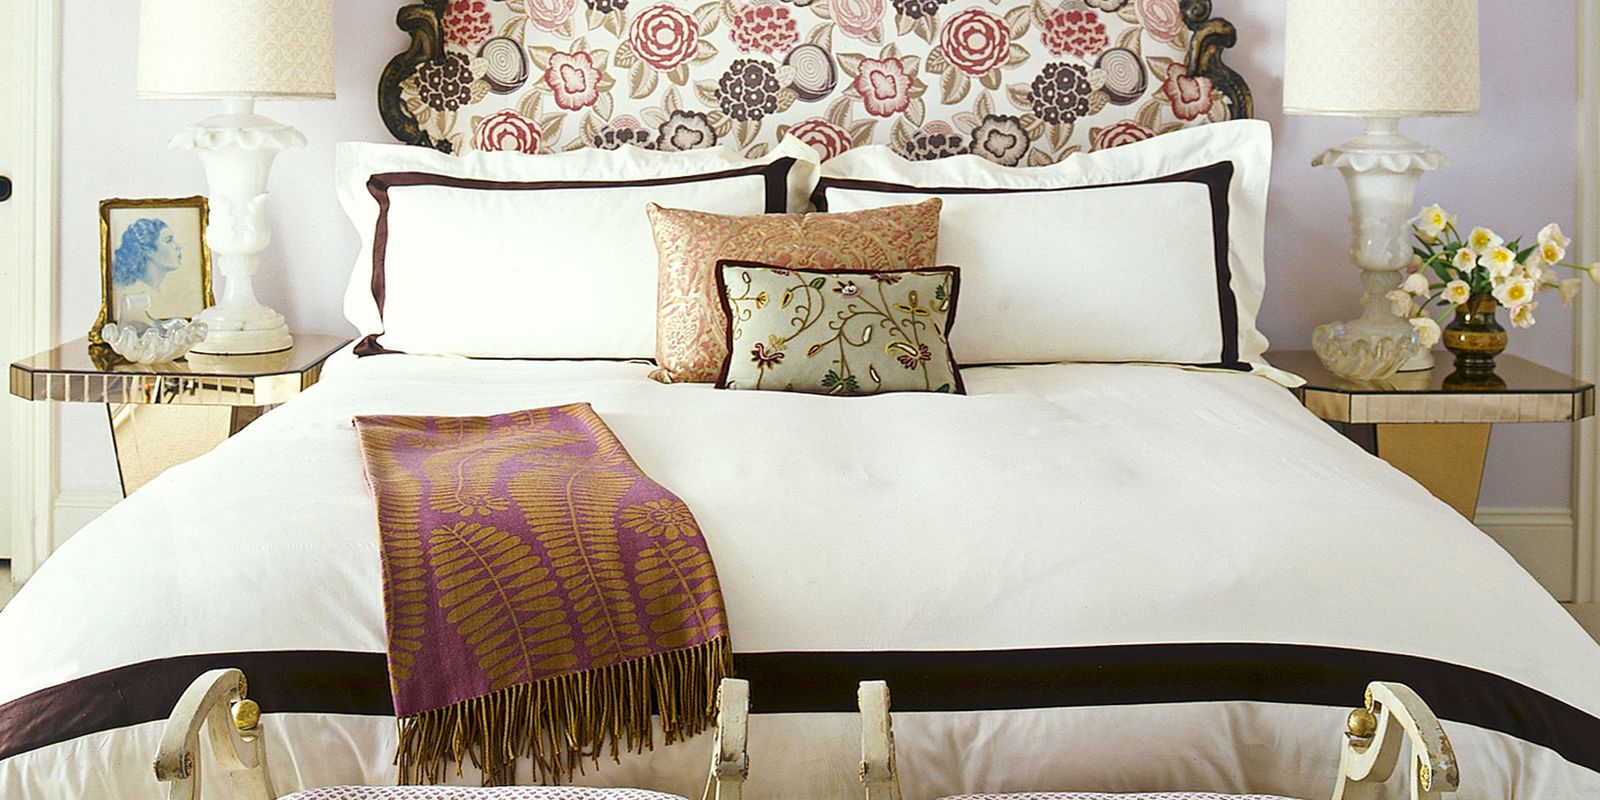 Diy romantic bedroom decorating ideas How to make bedroom romantic